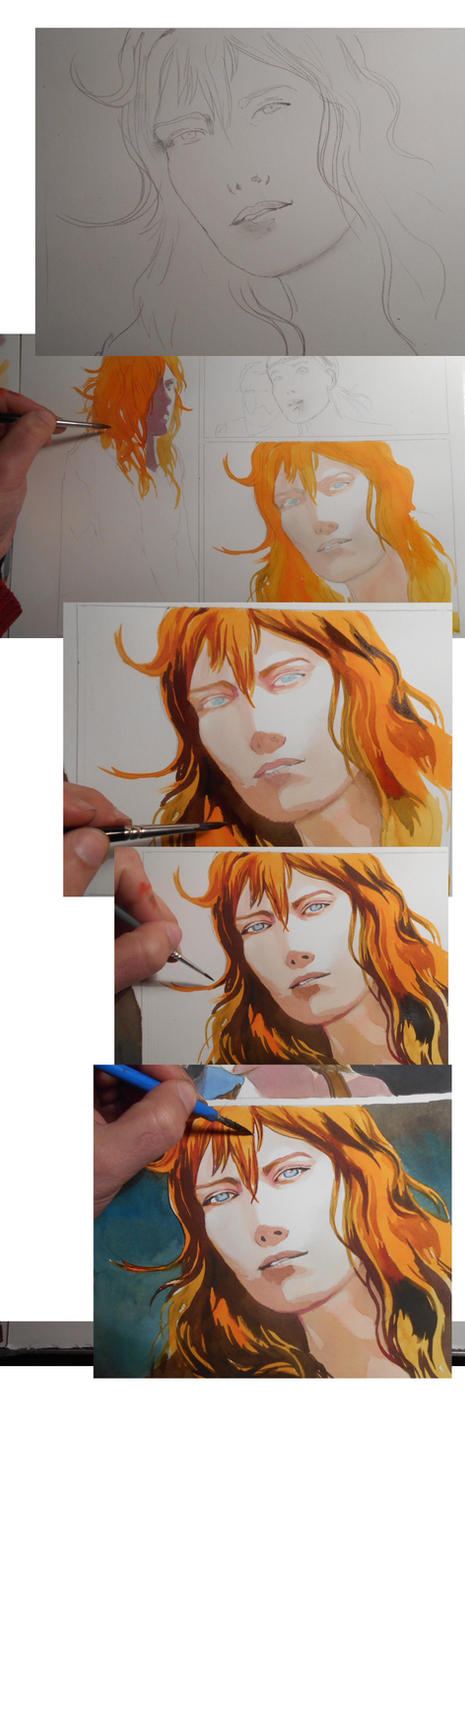 making of a comic book page by VincentPompetti